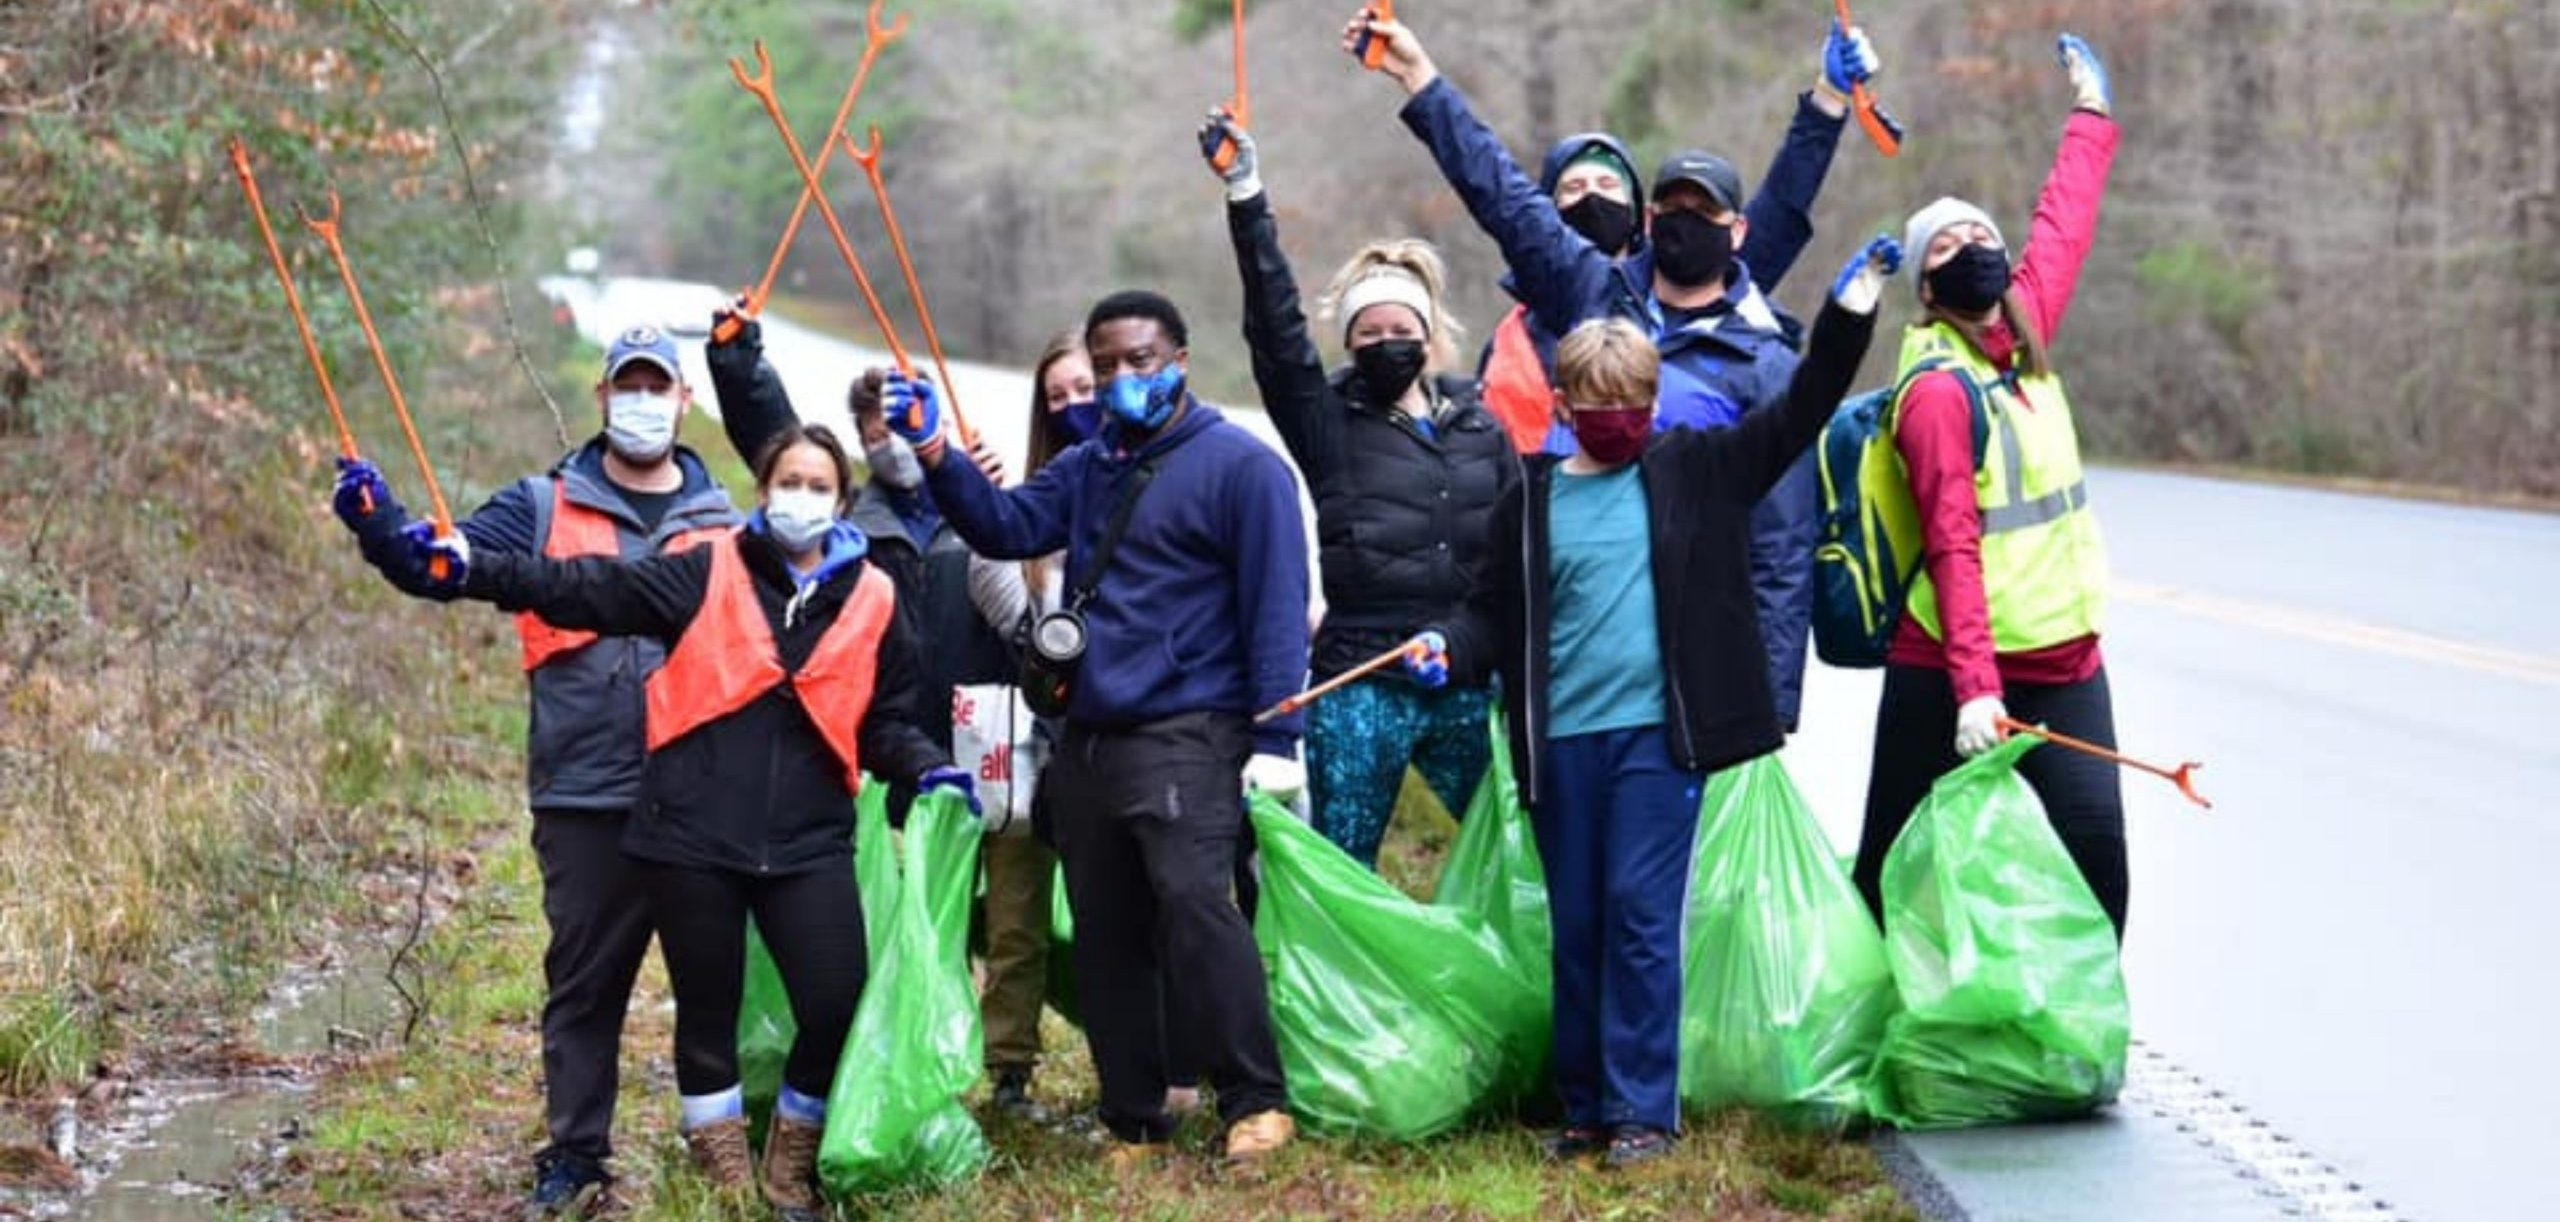 20 Ways to Participate in the 2021 Great American Cleanup